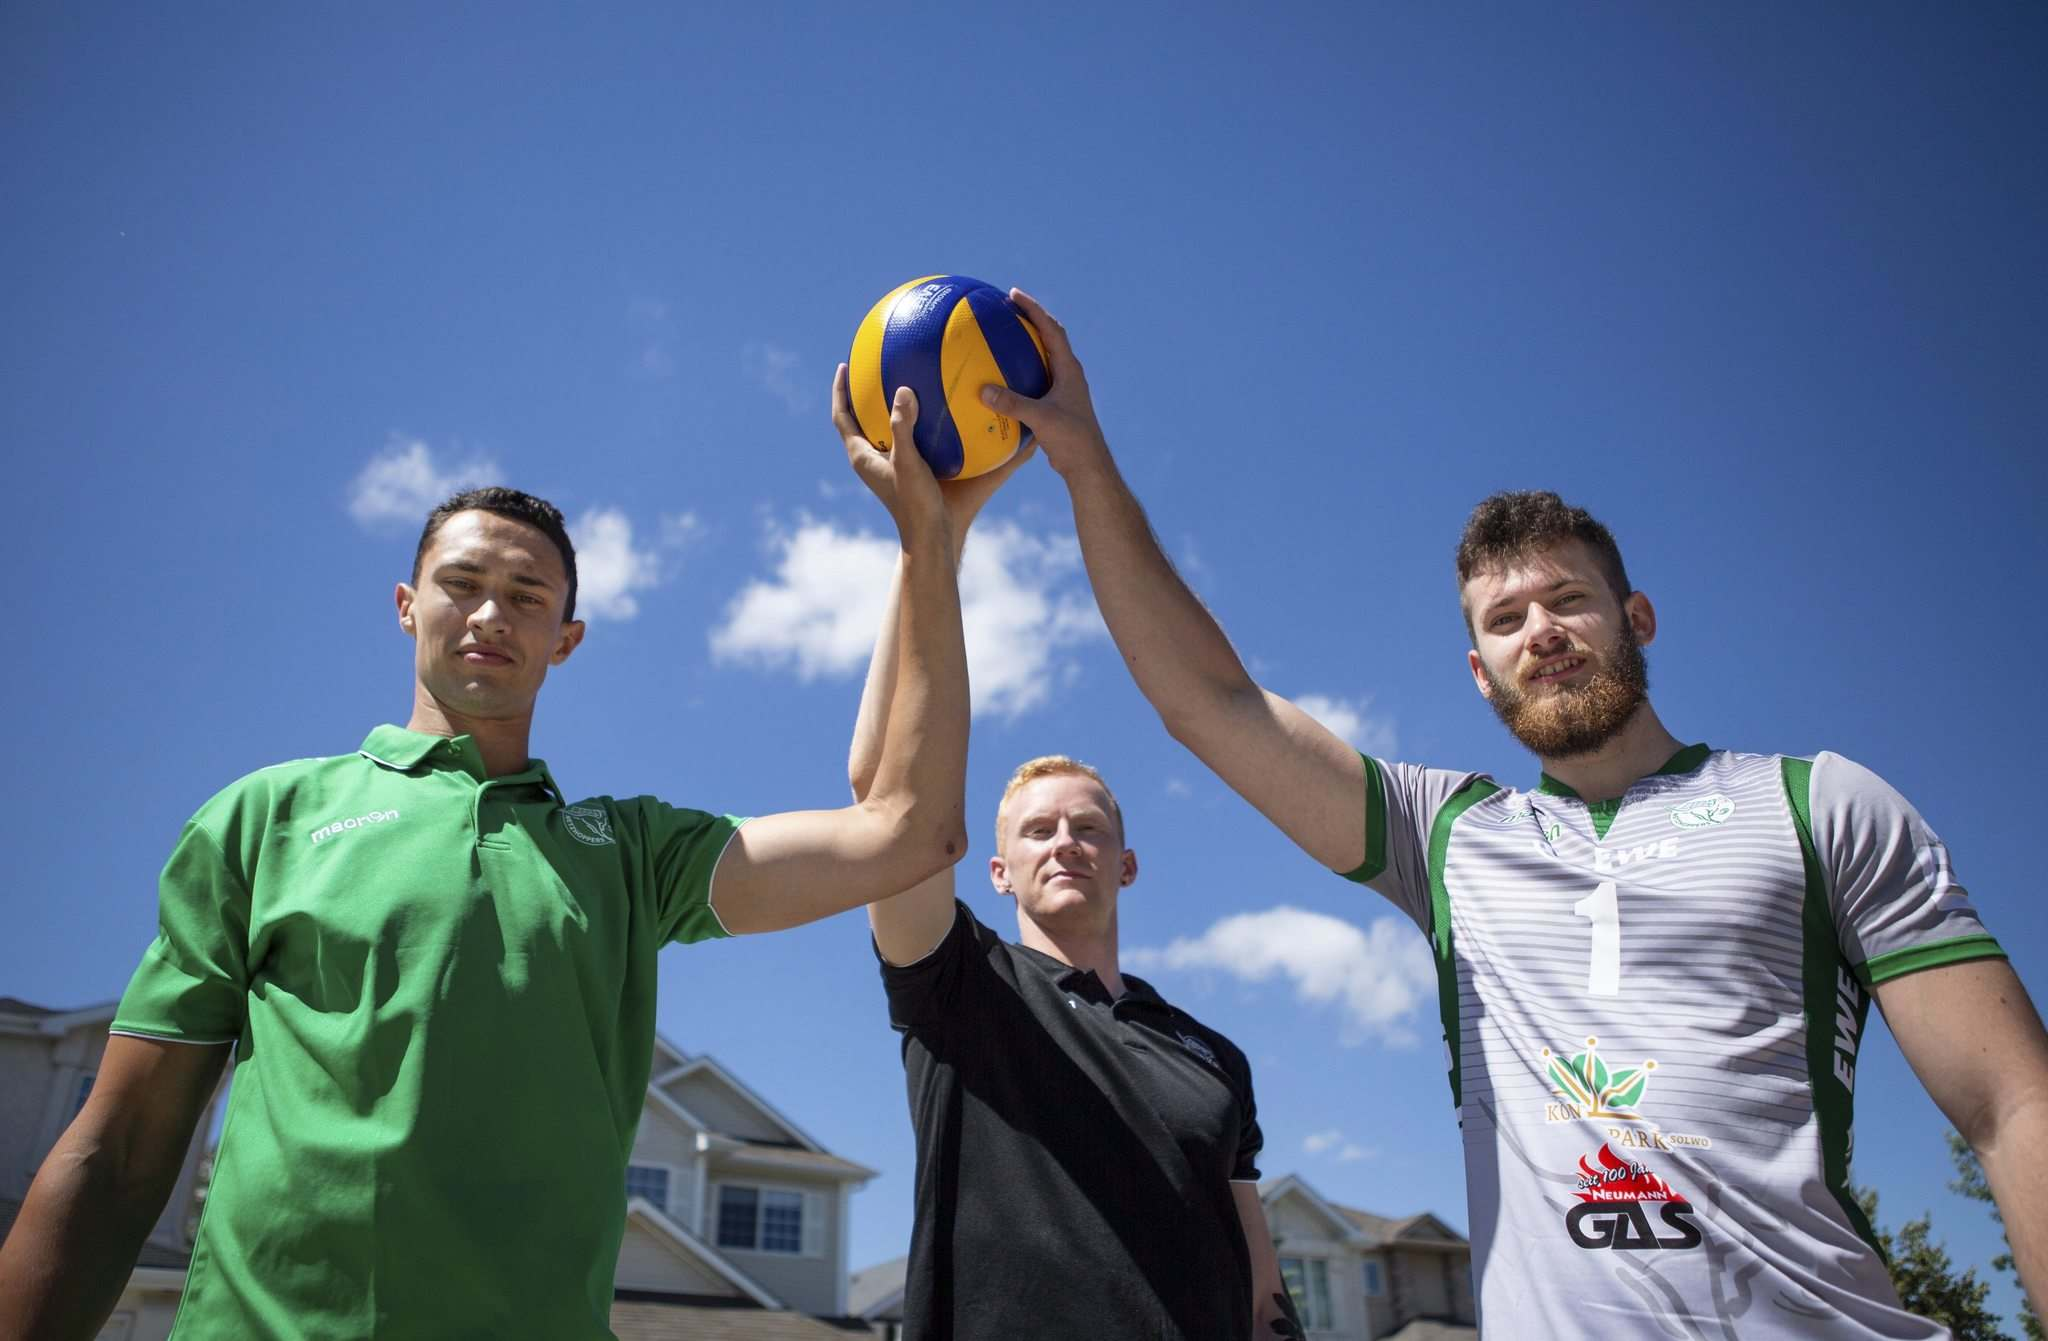 ANDREW RYAN / WINNIPEG FREE PRESS</p><p>Ken Rooney, Casey Schouten and Luke Herr have been playing volleyball in Winnipeg since they were teenagers, and have now signed on to play with a team in Germany.</p>